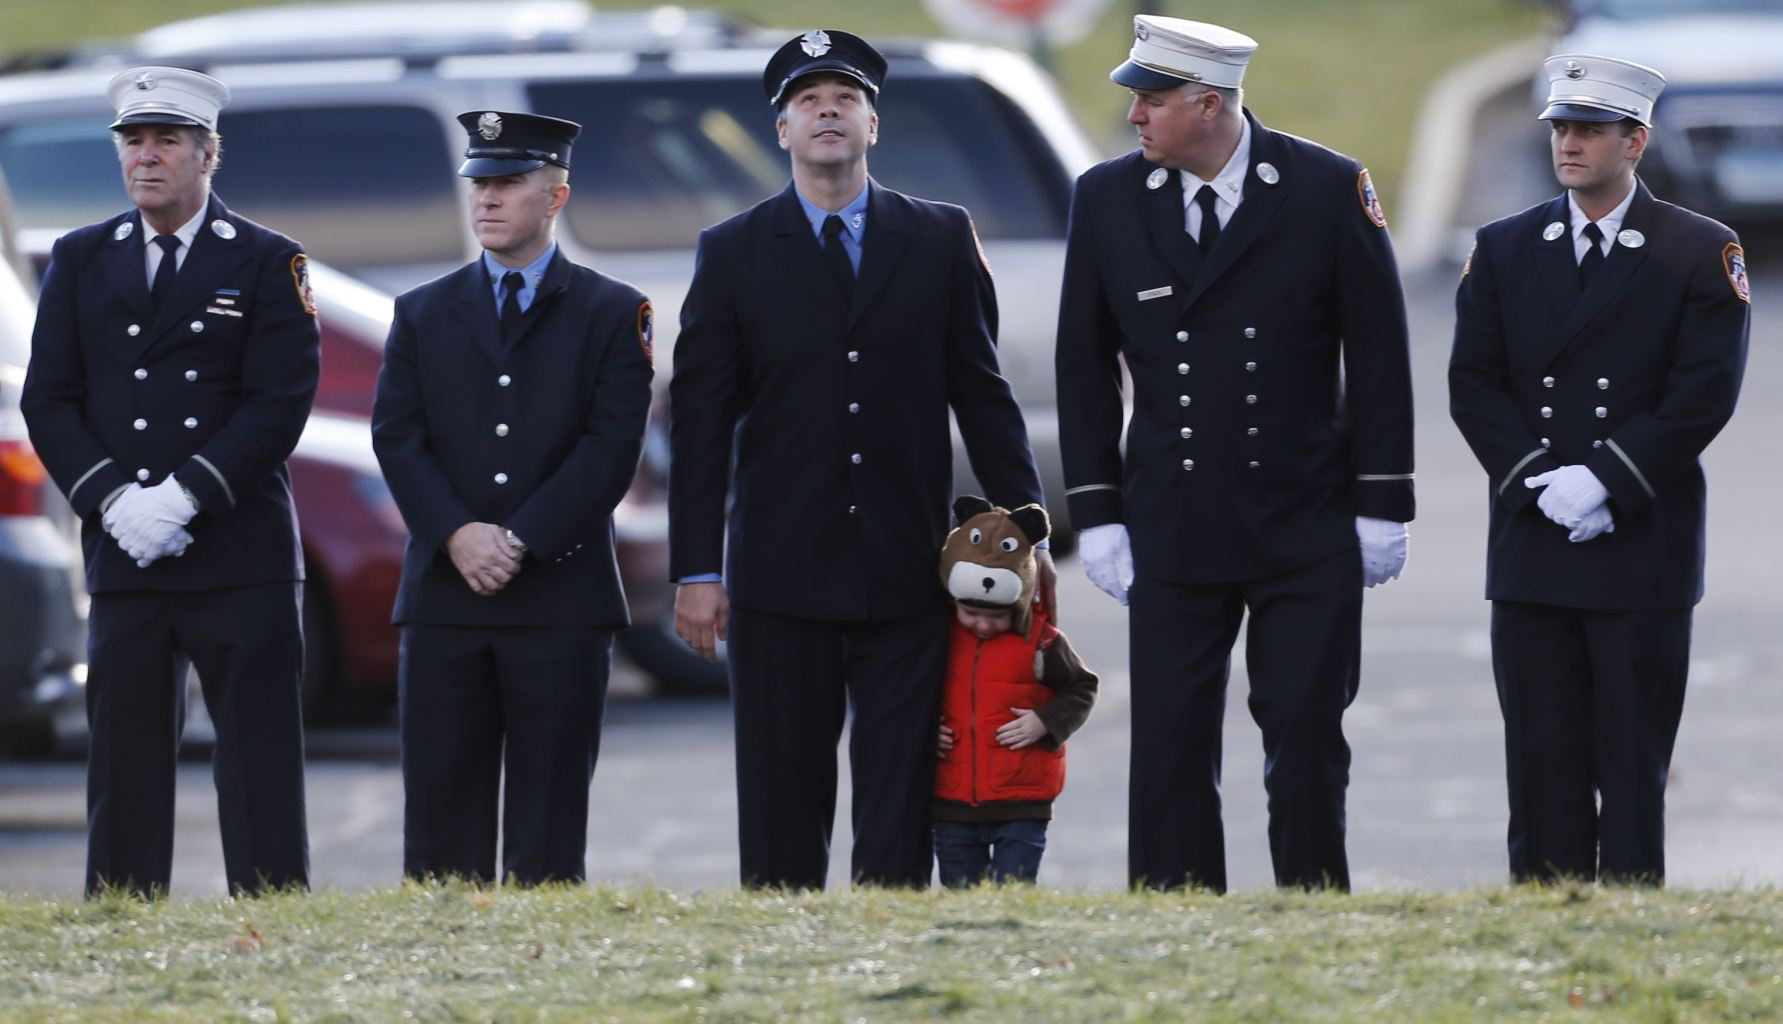 A child lines up with firefighters outside the funeral for school shooting victim Daniel Gerard Barden,at St. Rose of Lima Catholic Church in Newtown, Conn., Wednesday, Dec. 19, 2012.